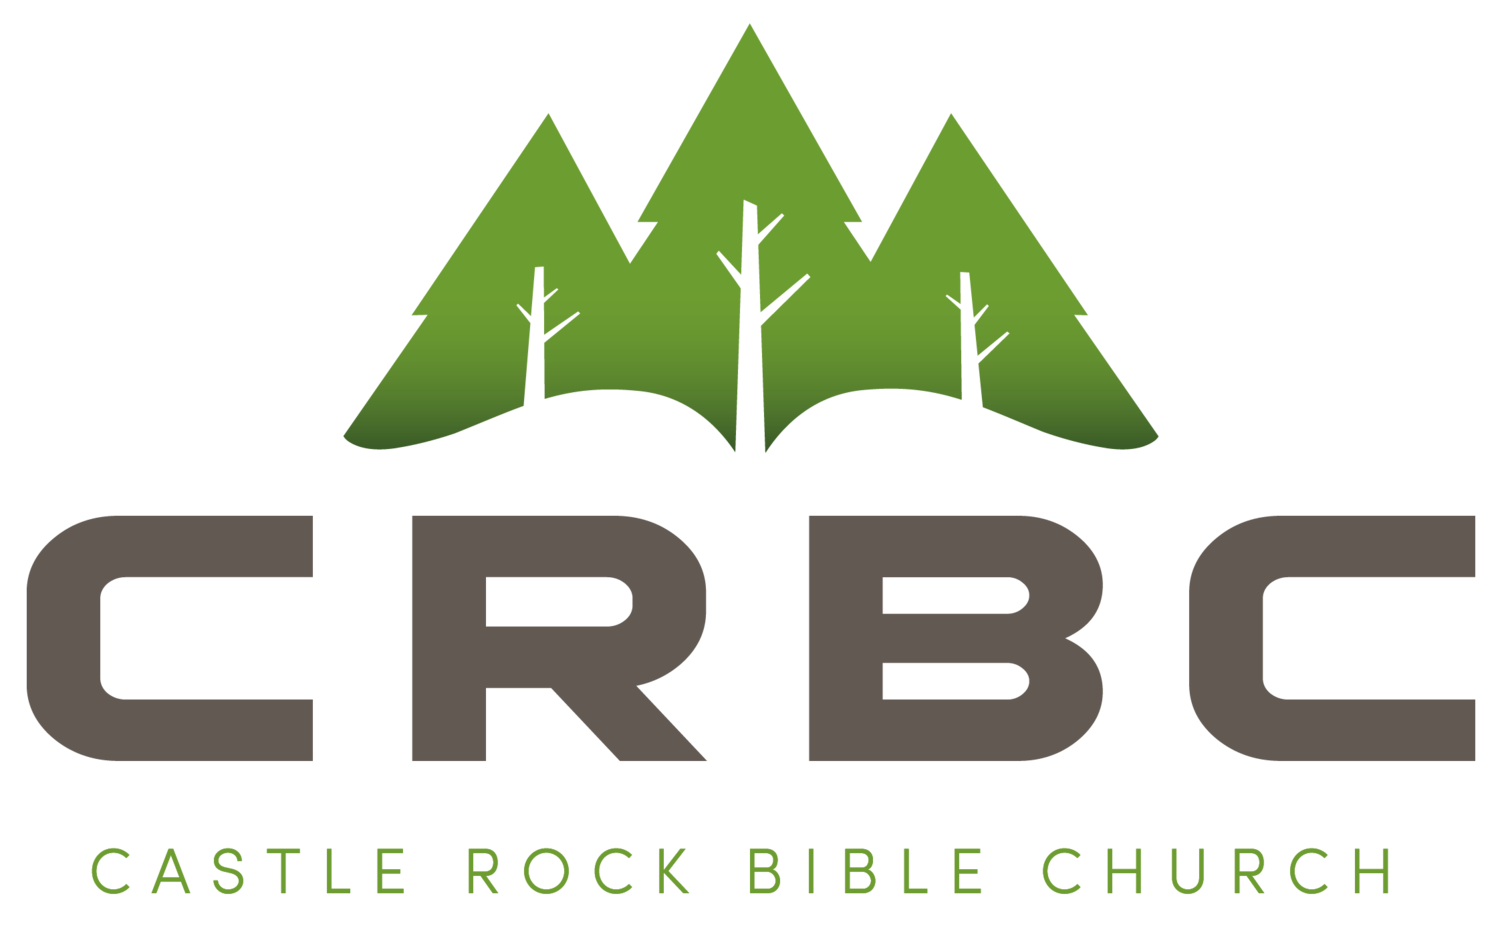 CRBC_full-color.png